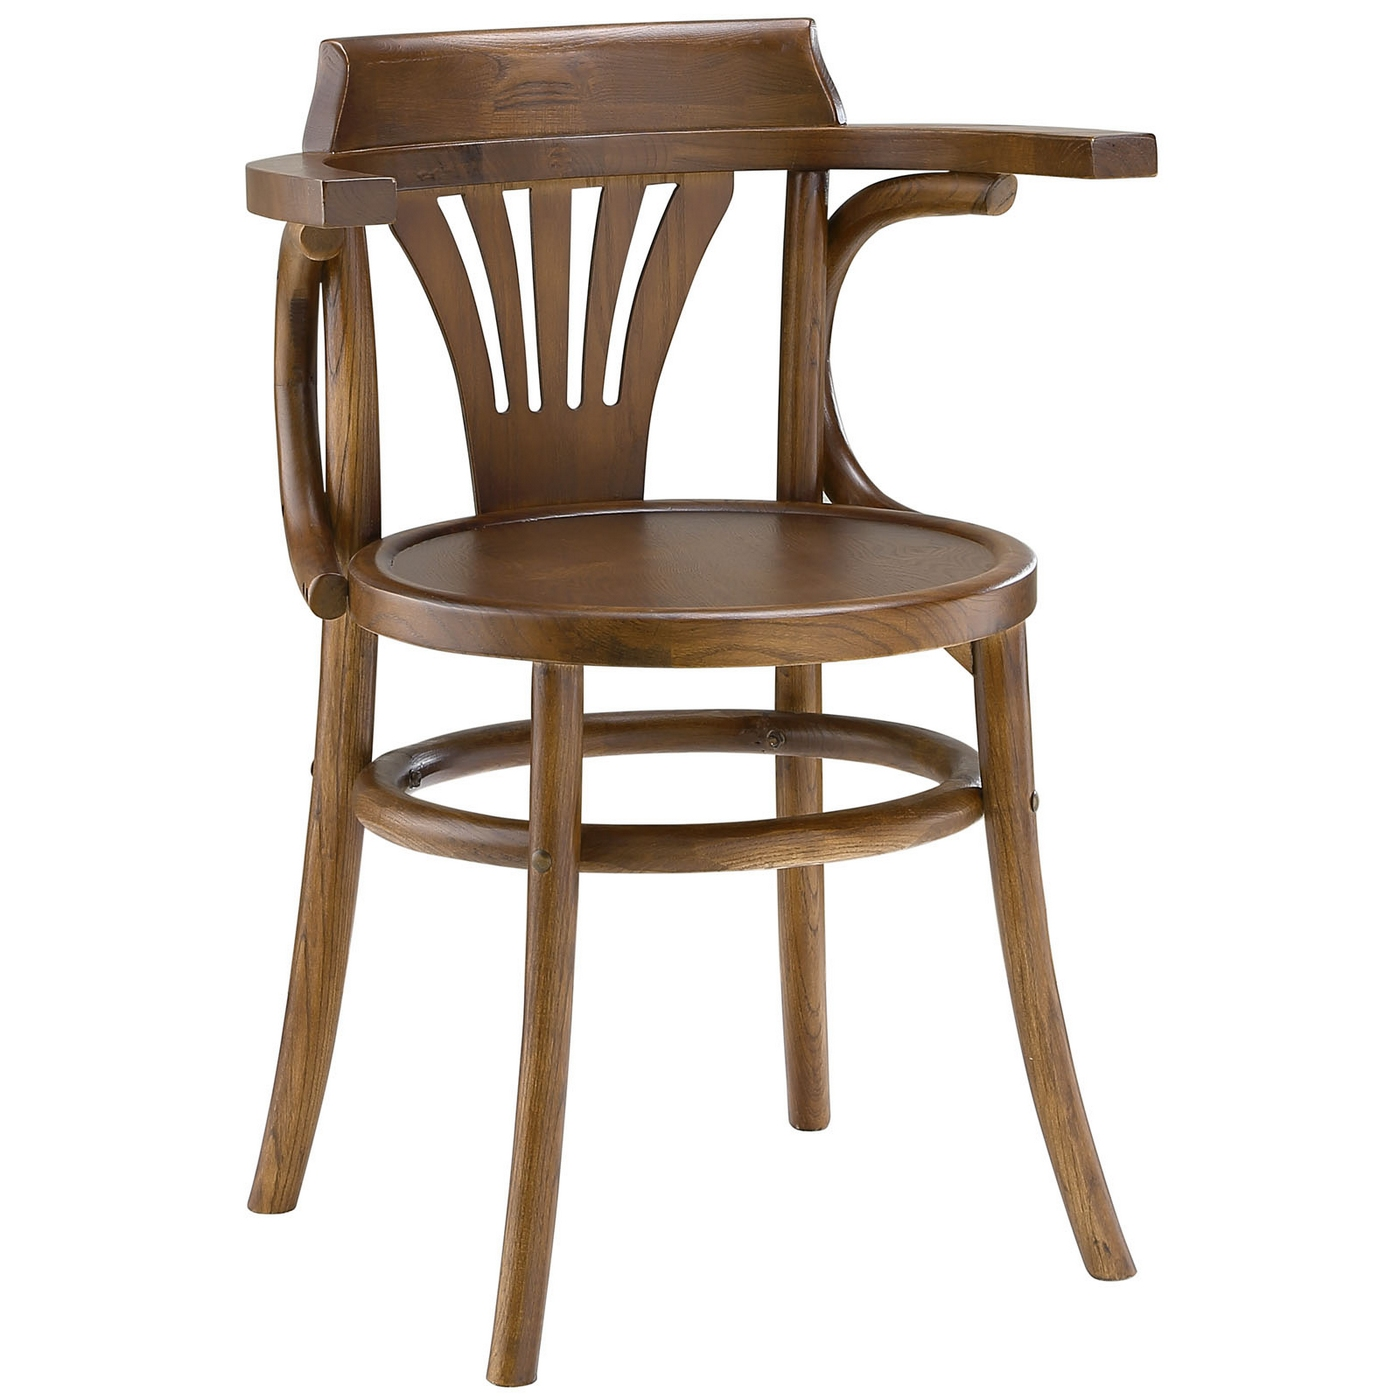 Rustic Dining Chairs Stretch Modern Rustic Solid Wood Round Seat Dining Side